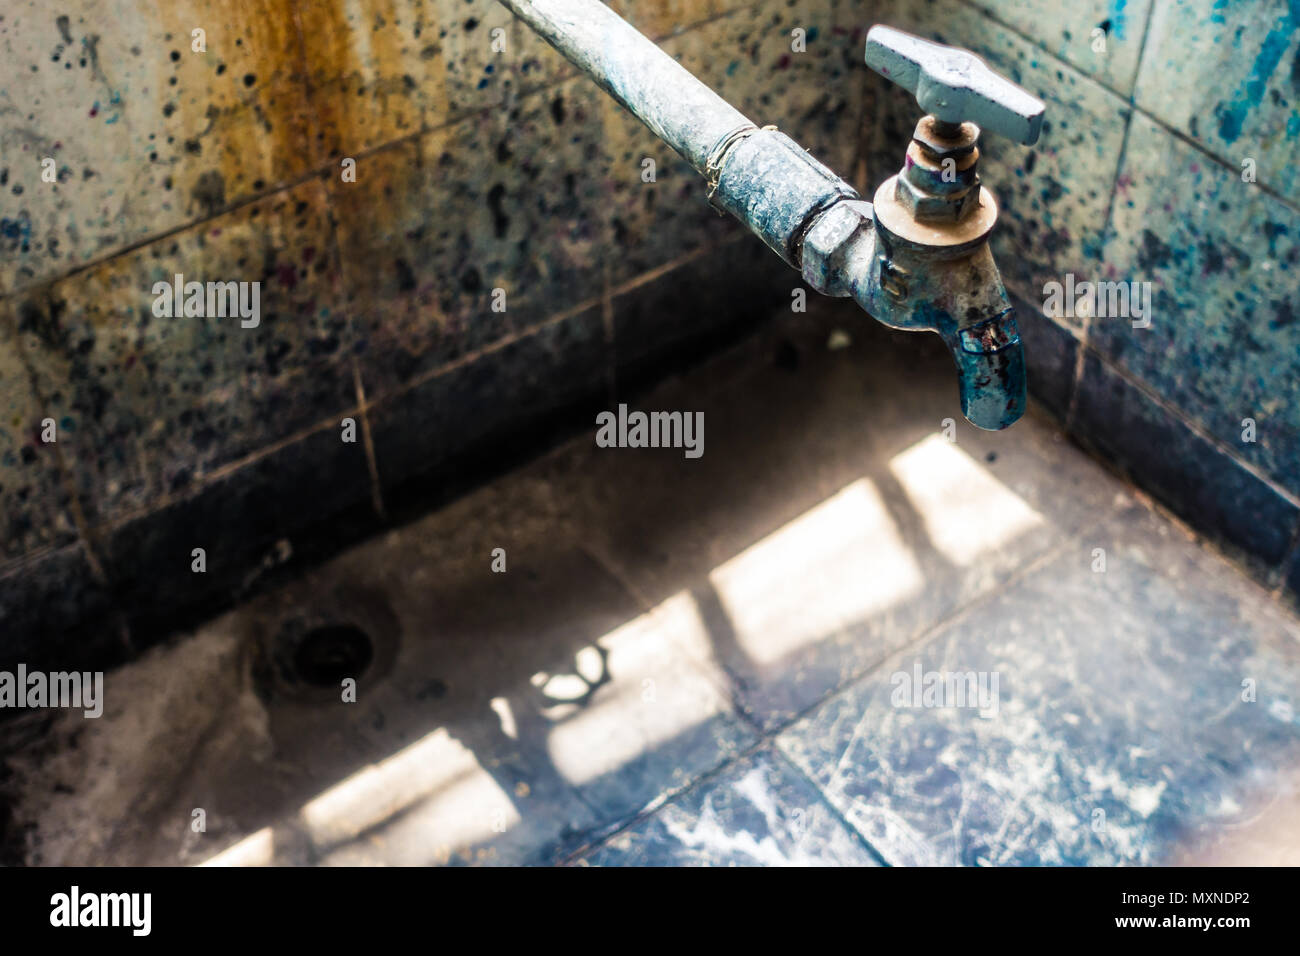 Long-neglected Water Faucet - Stock Image